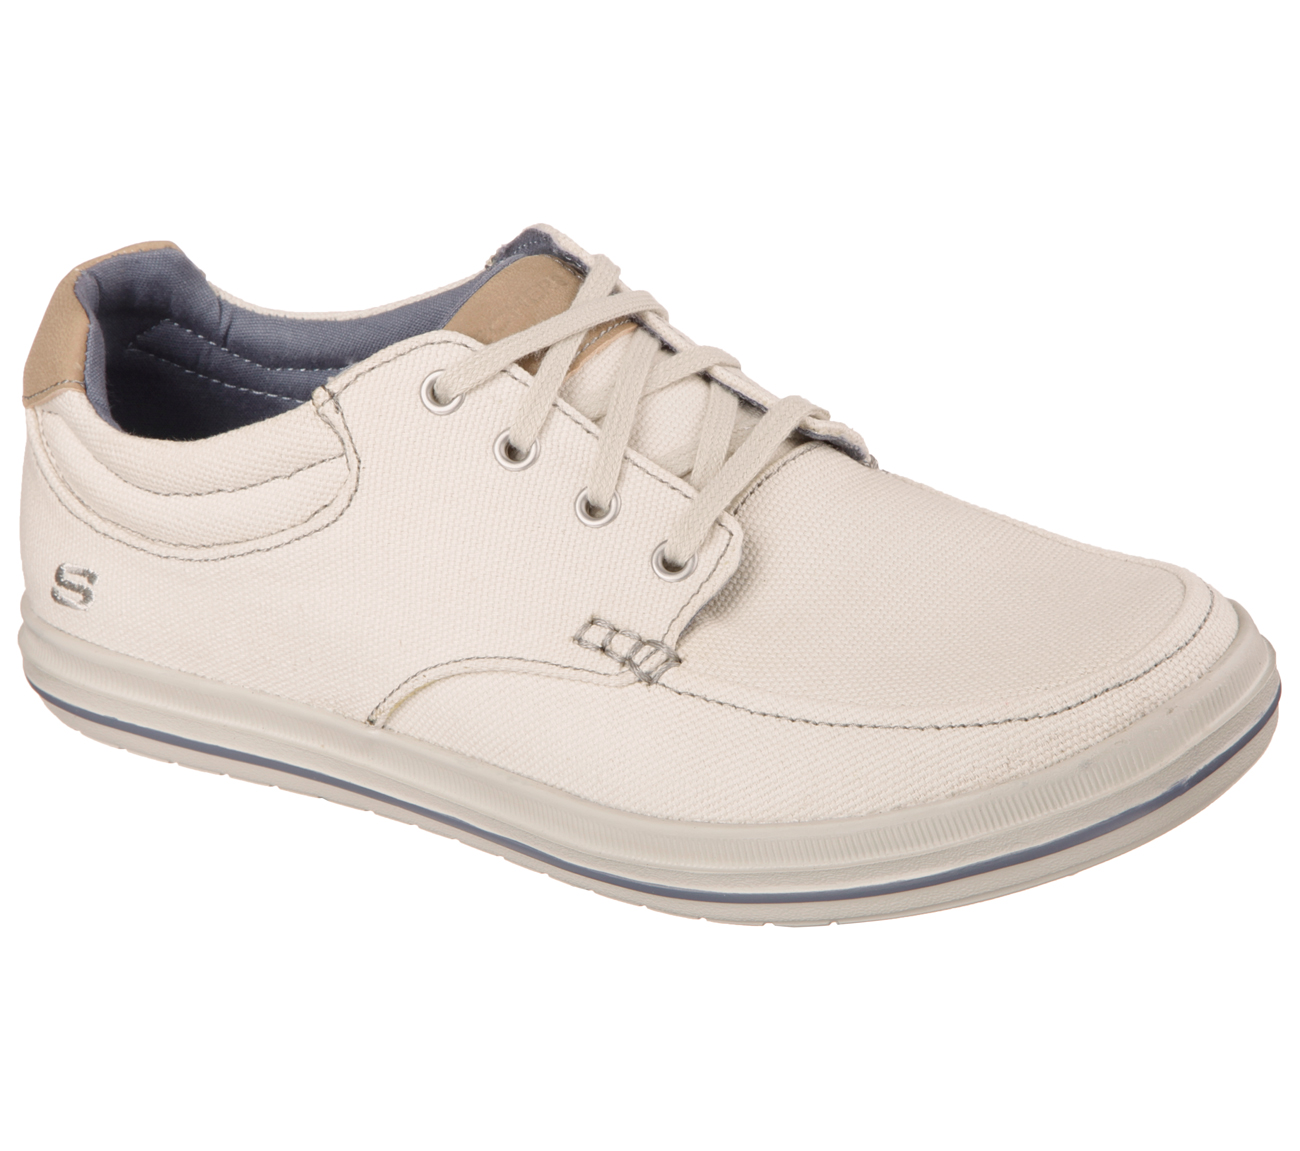 buy skechers relaxed fit define sodencomfort shoes